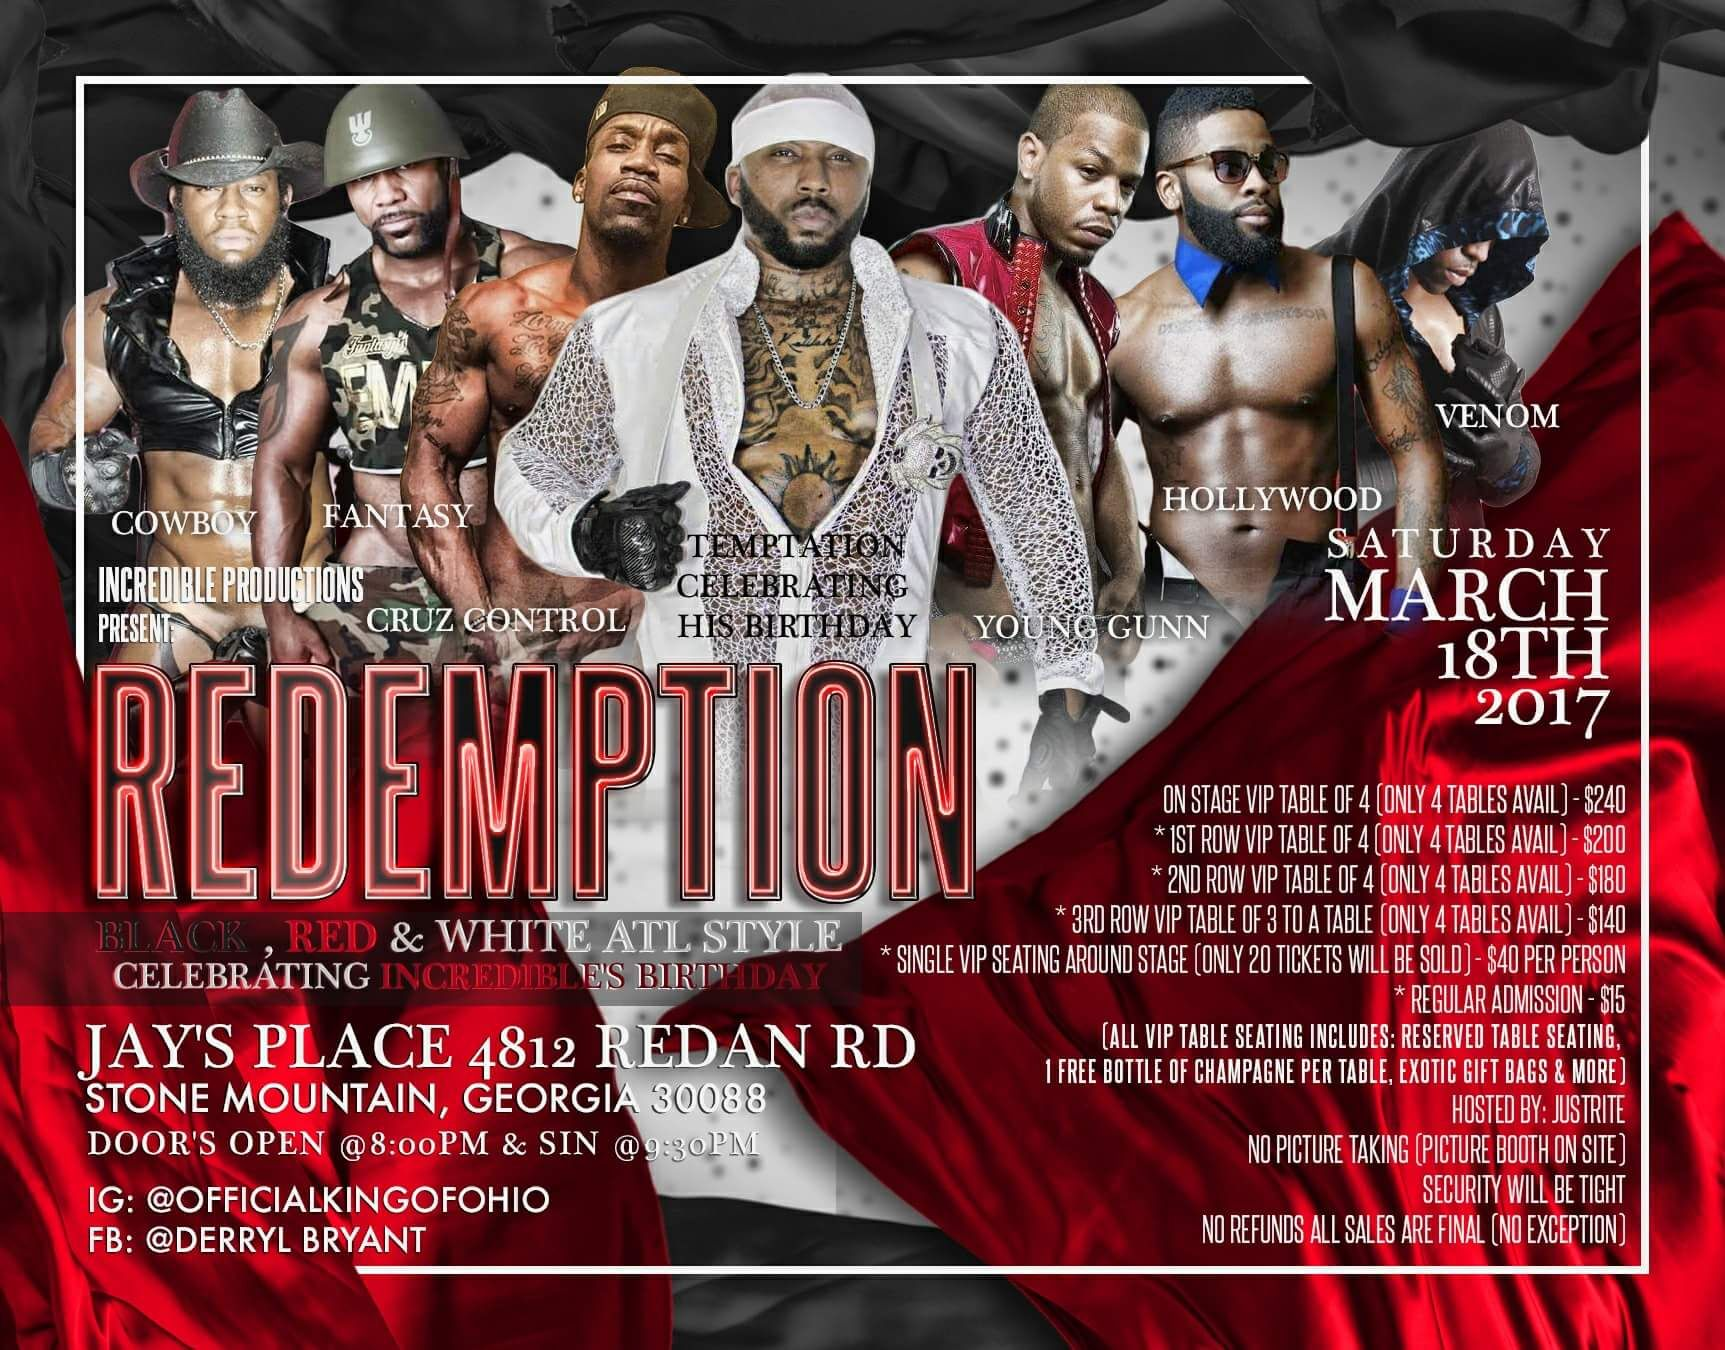 Come celebrate with Incredible in Atlanta area on March 18th, 2017!!!!!! Redemption    #Incredible #malerevue #maledancers #Atlanta